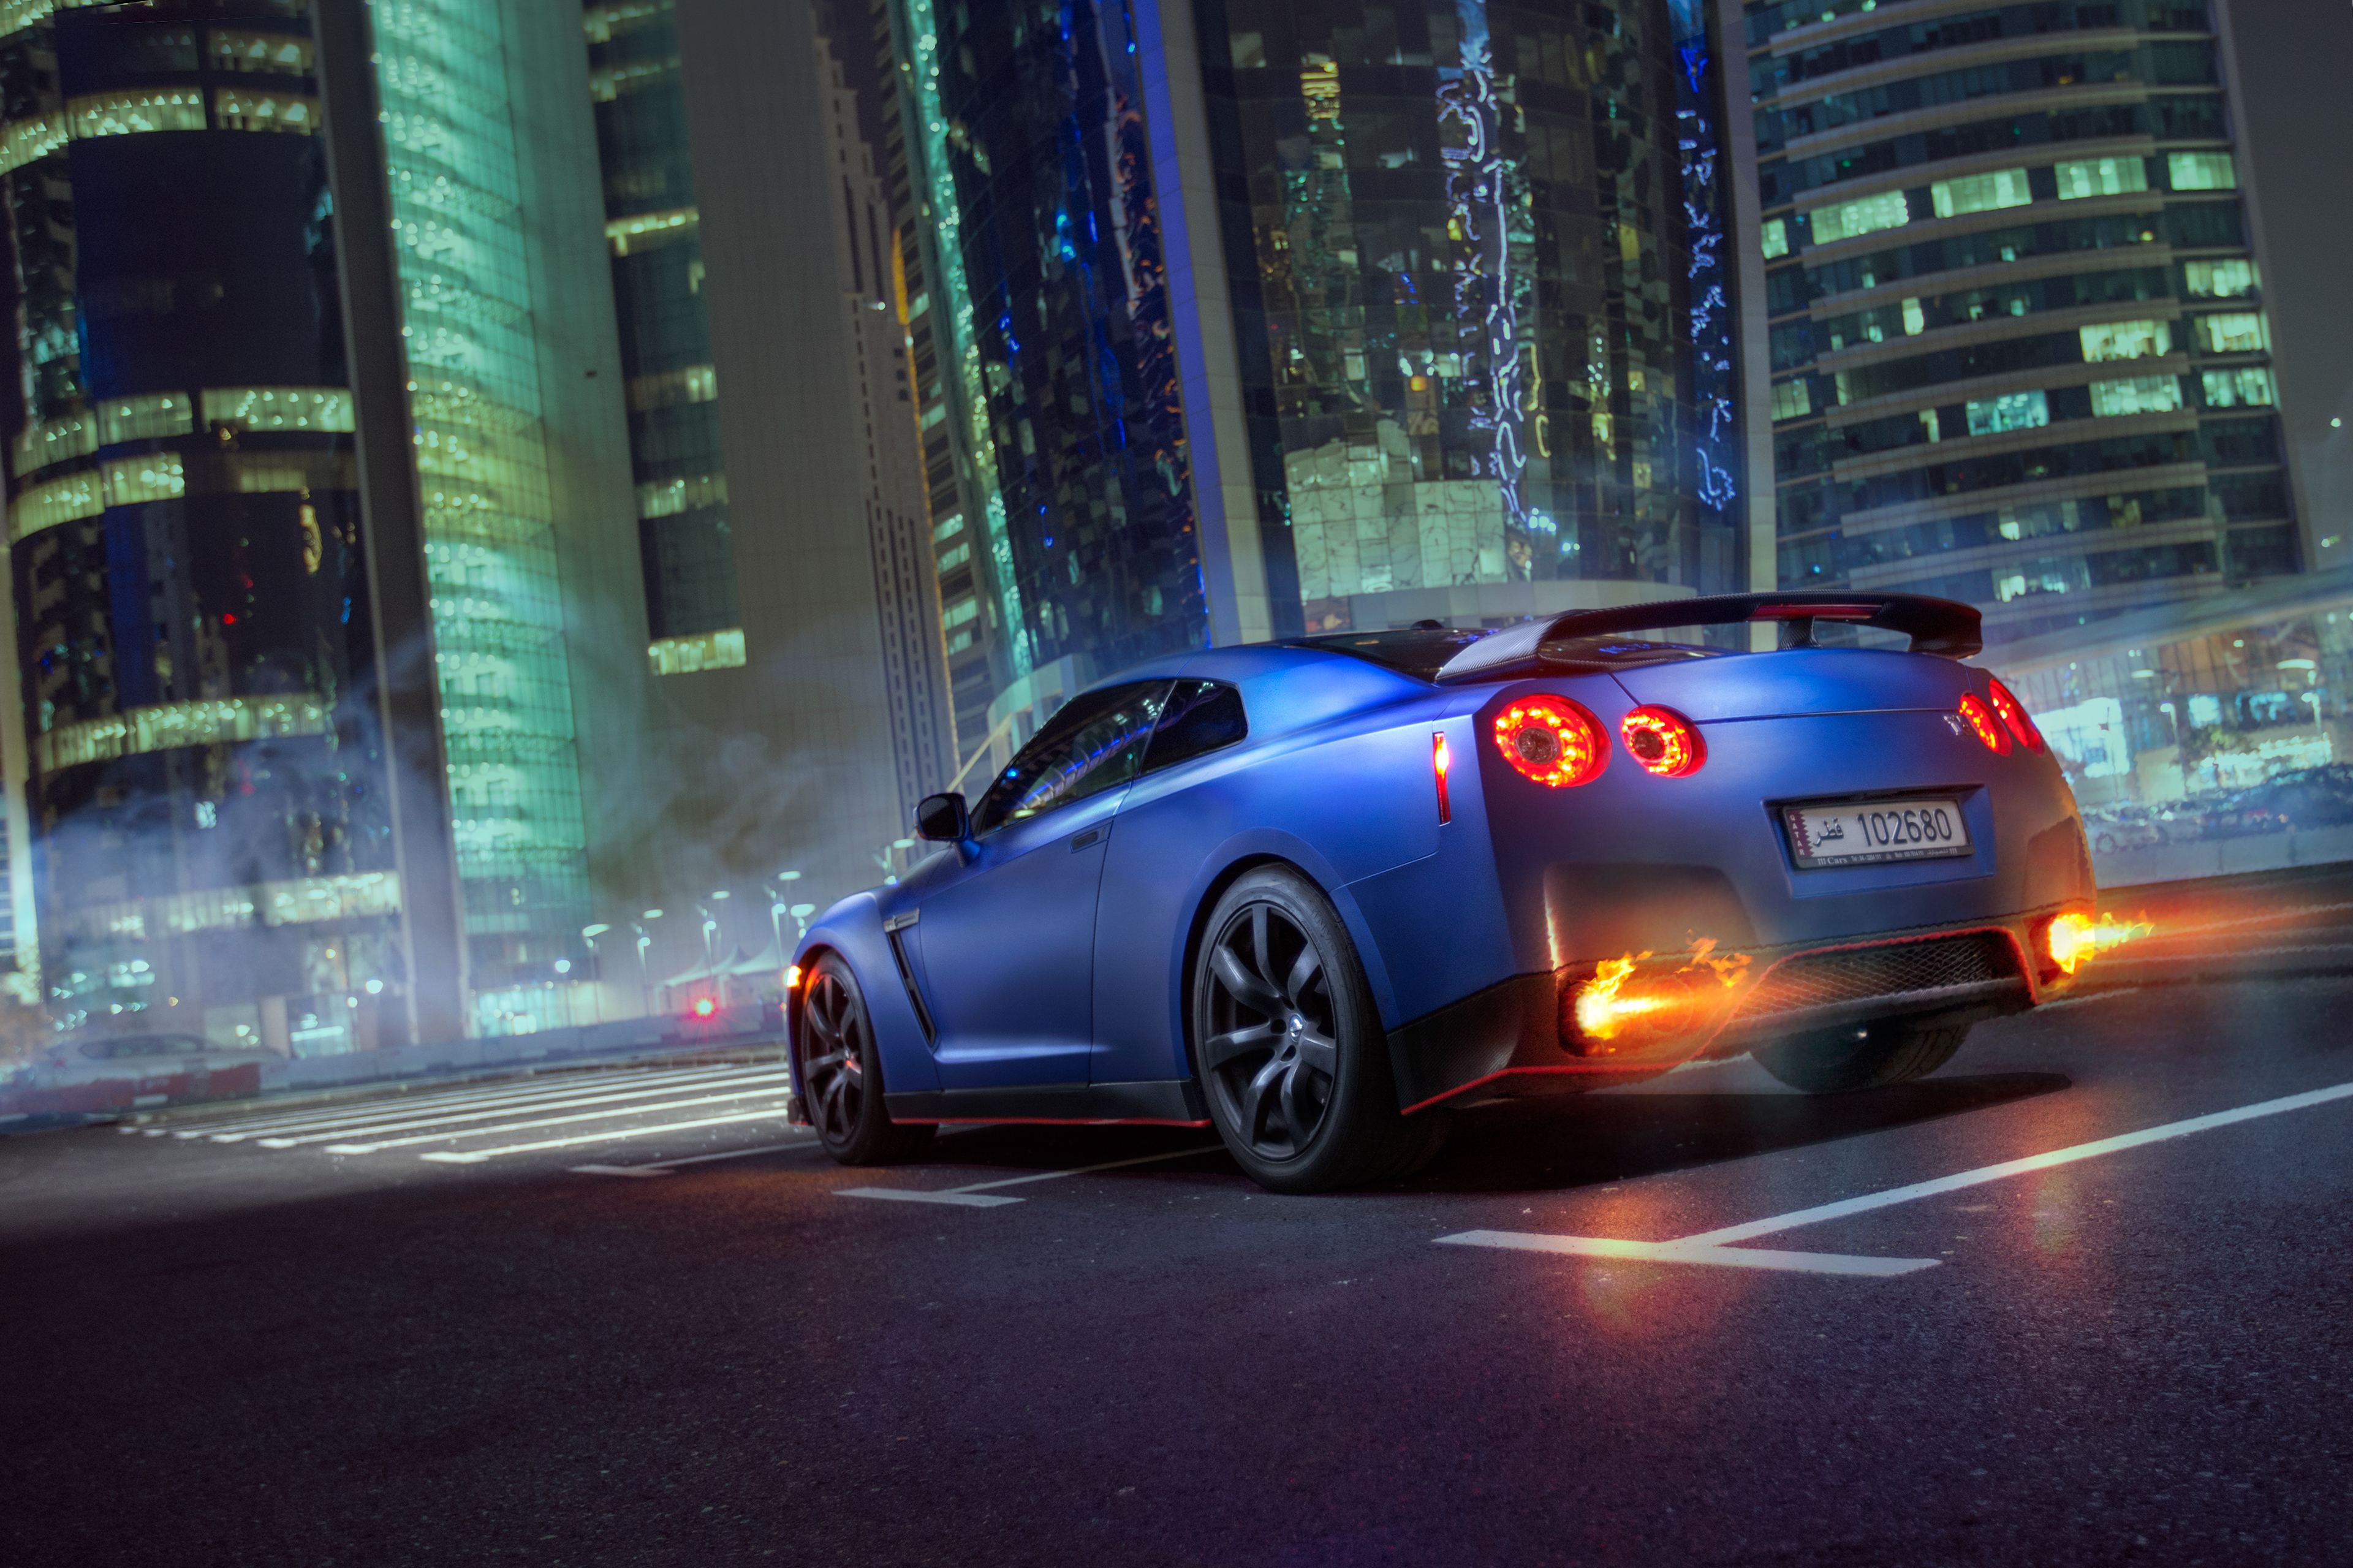 2048x2048 Anthem Ipad Air Hd 4k Wallpapers Images: 2048x2048 Nissan GTR Rear 4k Ipad Air HD 4k Wallpapers